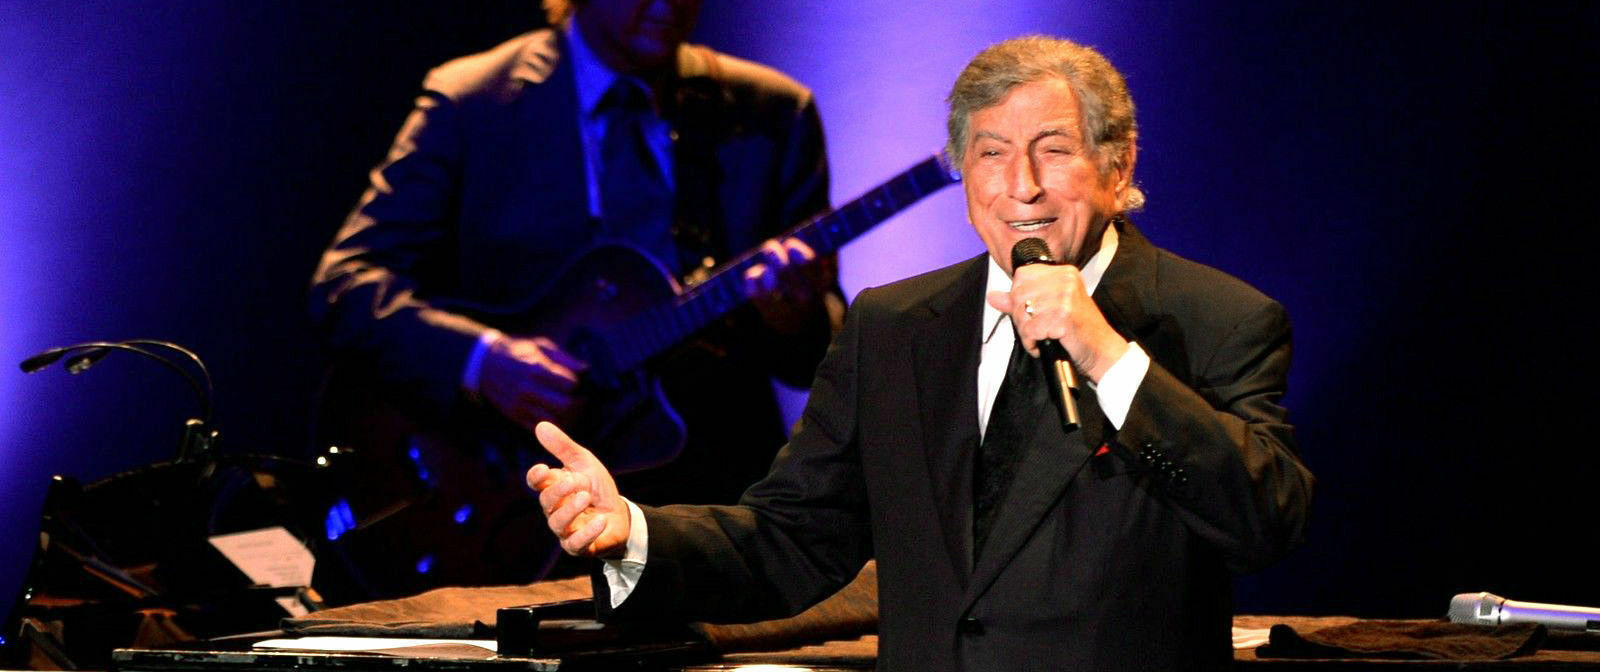 Tony Bennett Tickets (Postponed from May 13, 2017)